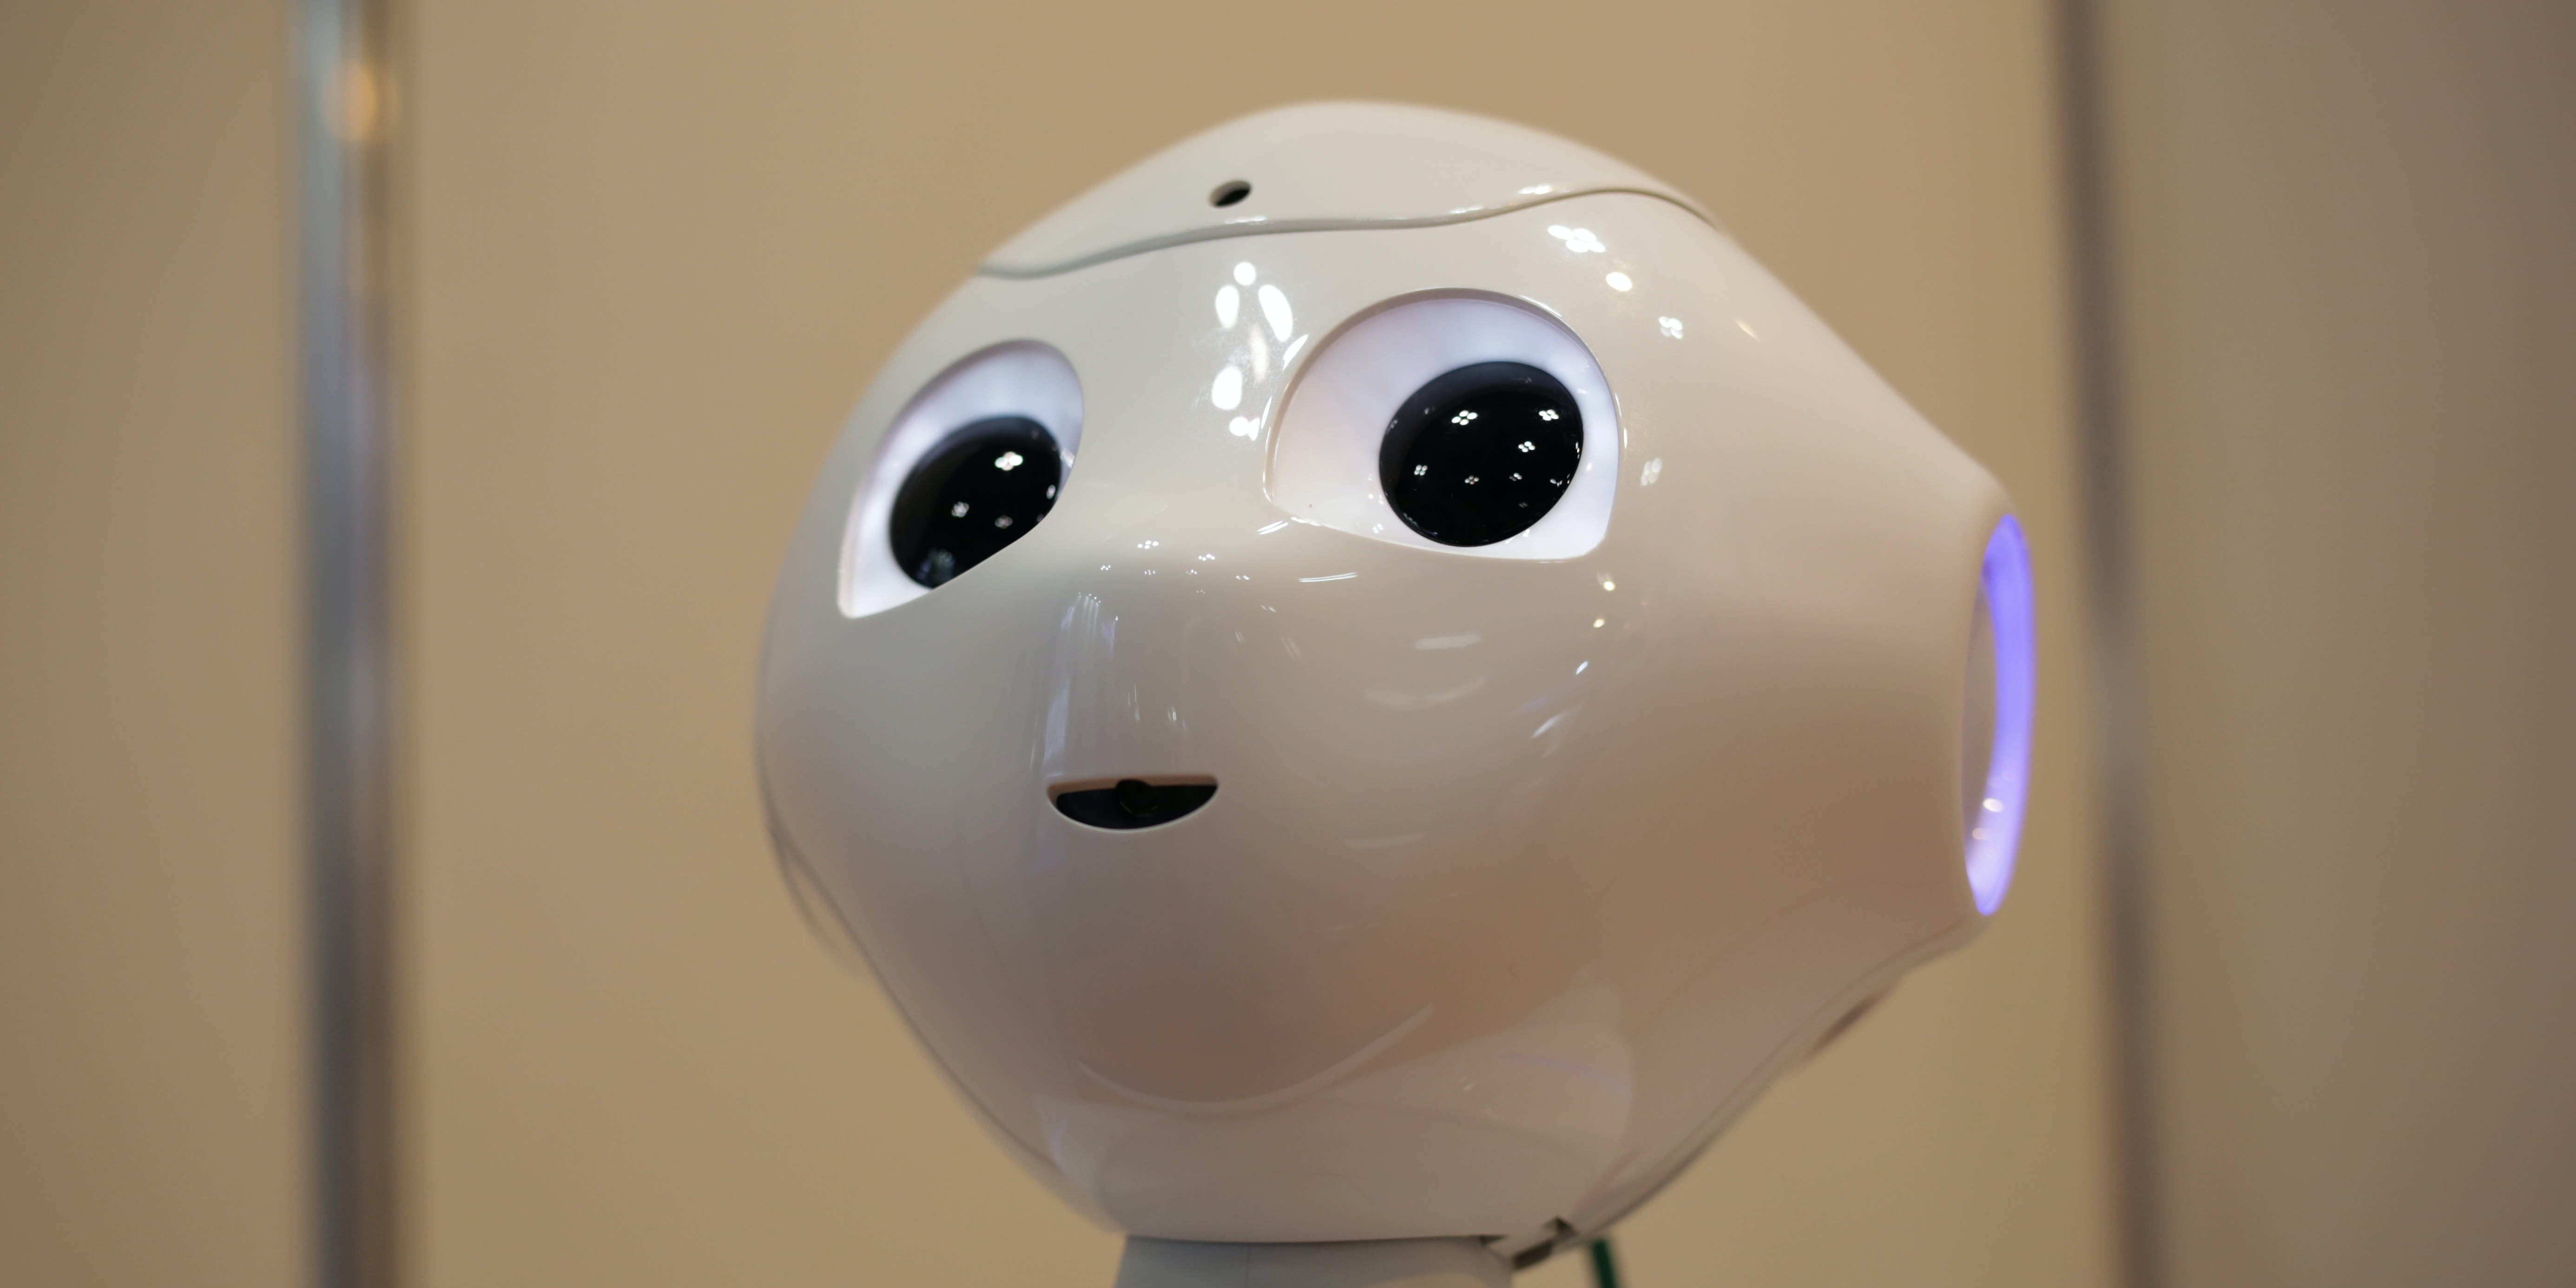 TOKYO, JAPAN - OCTOBER 19: Pepper Robot, developed by Softbank talks to the guests during the Japan Robot Week 2016 at Tokyo Big Sight on October 19, 2016 in Tokyo, Japan. At this biennial event, the participating companies exhibit their latest service robotic technologies and components. (Photo by Taro Karibe/Getty Images)